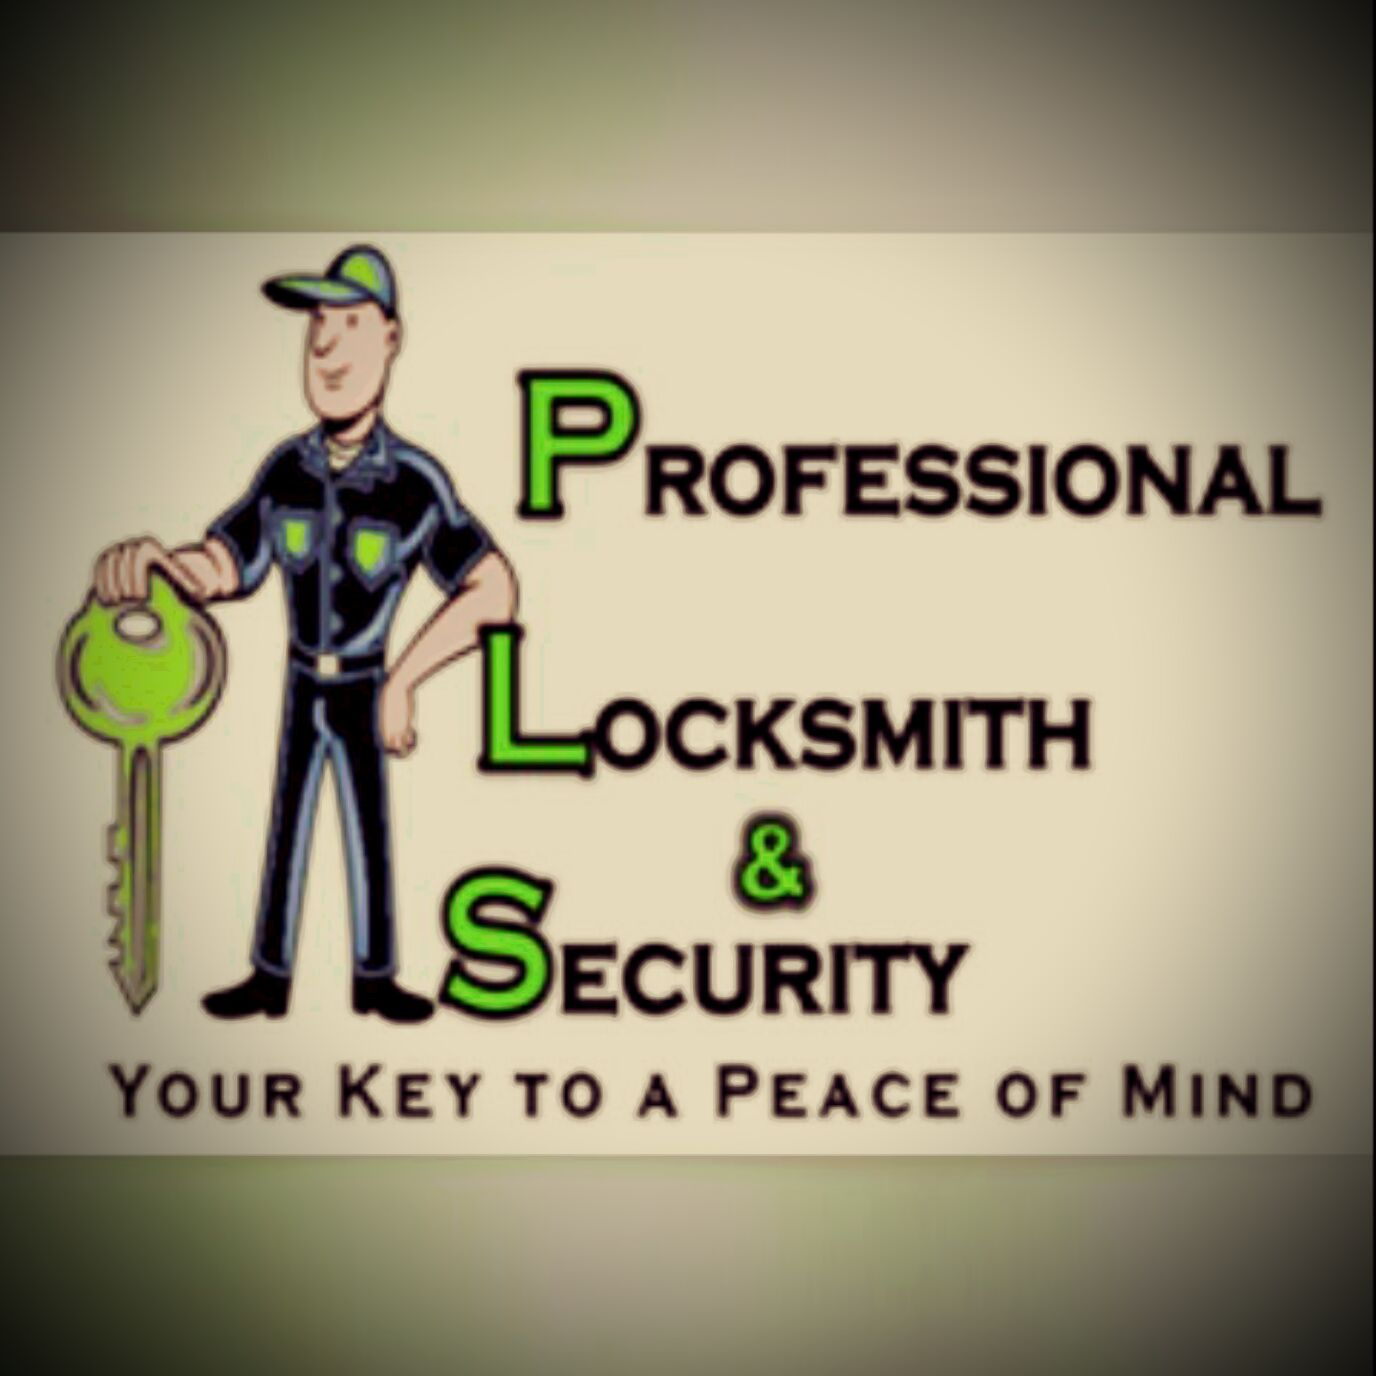 Choose Local - choose PLS Locksmith. Call us today for any locksmith issue (954) 507-3993